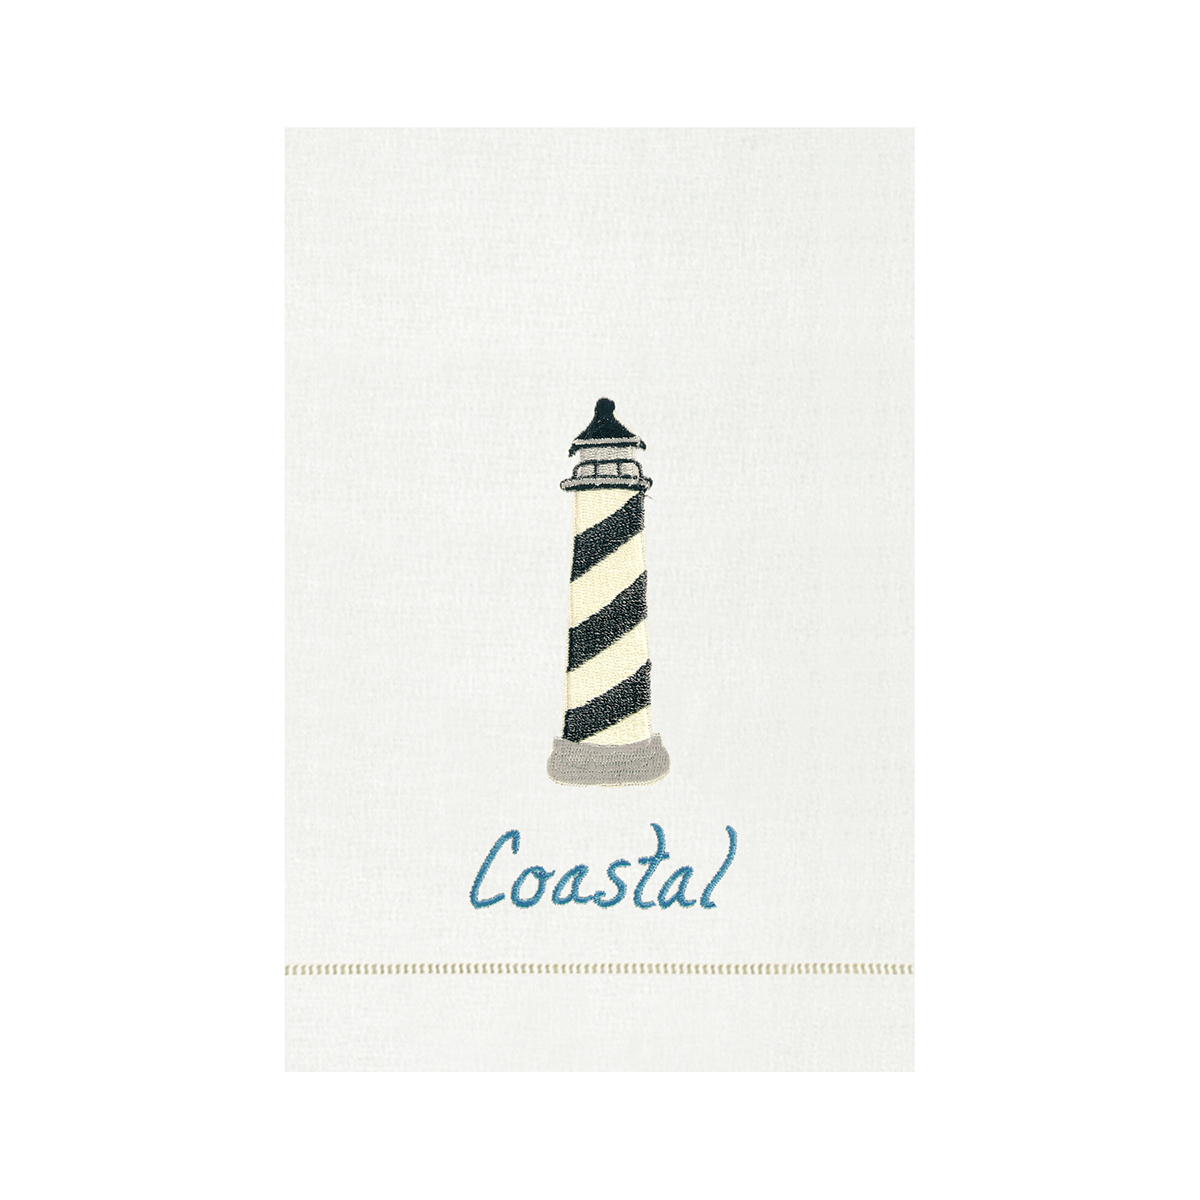 C&F Home_Coastal_Bedding_Towels.jpg